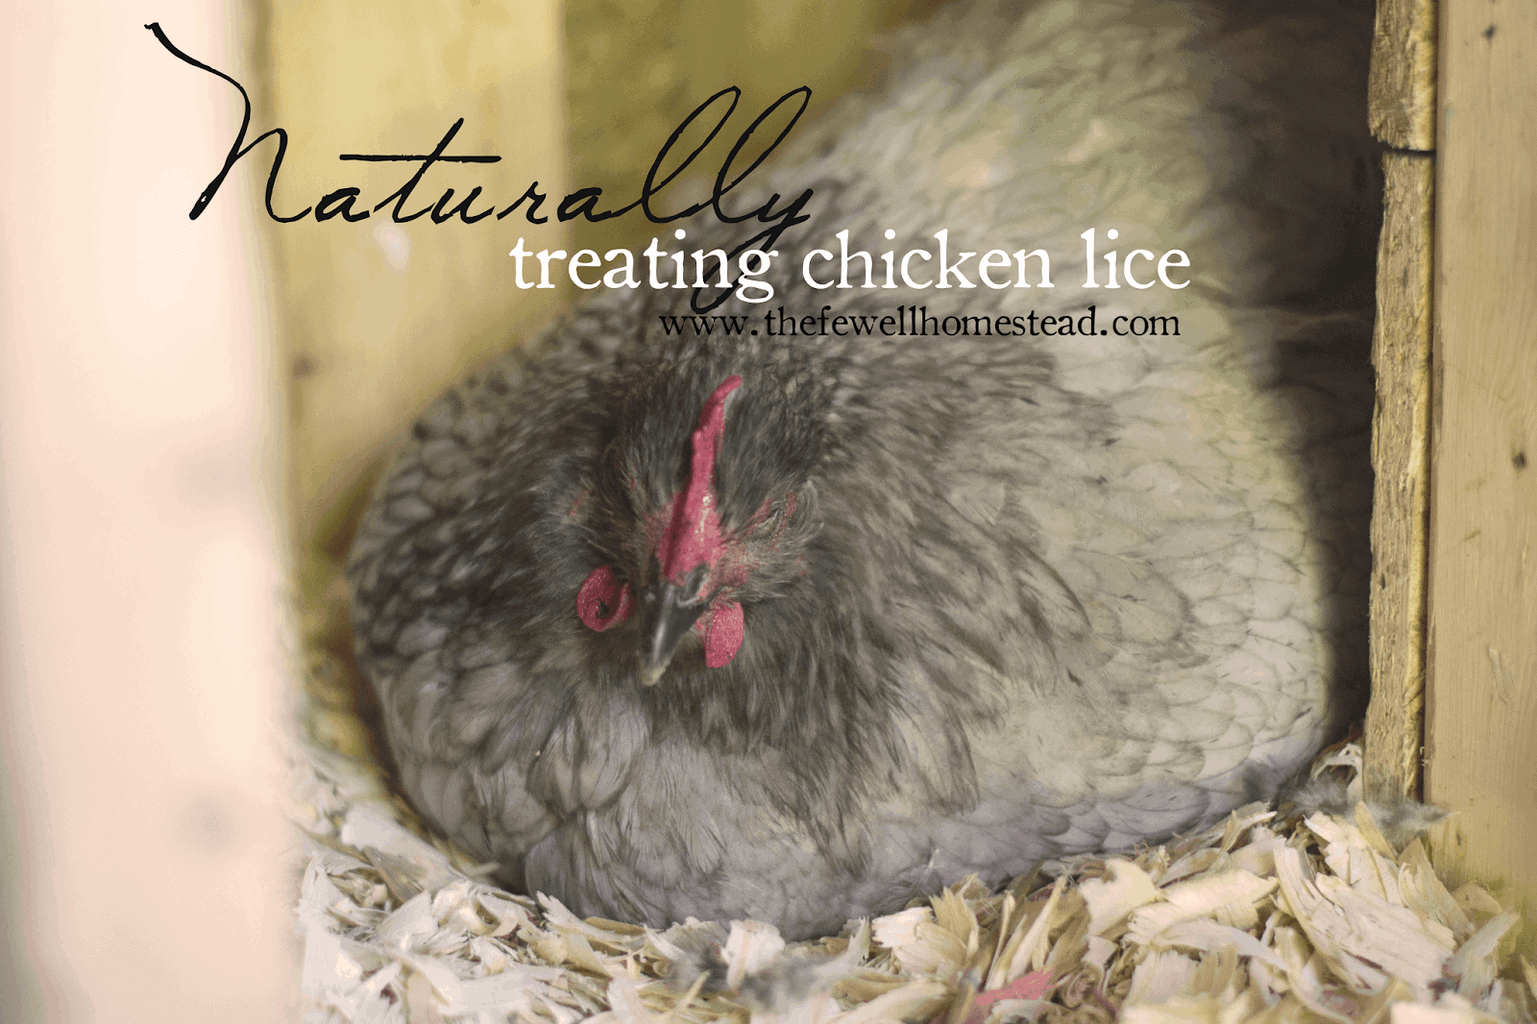 Naturally Treating Chicken Lice